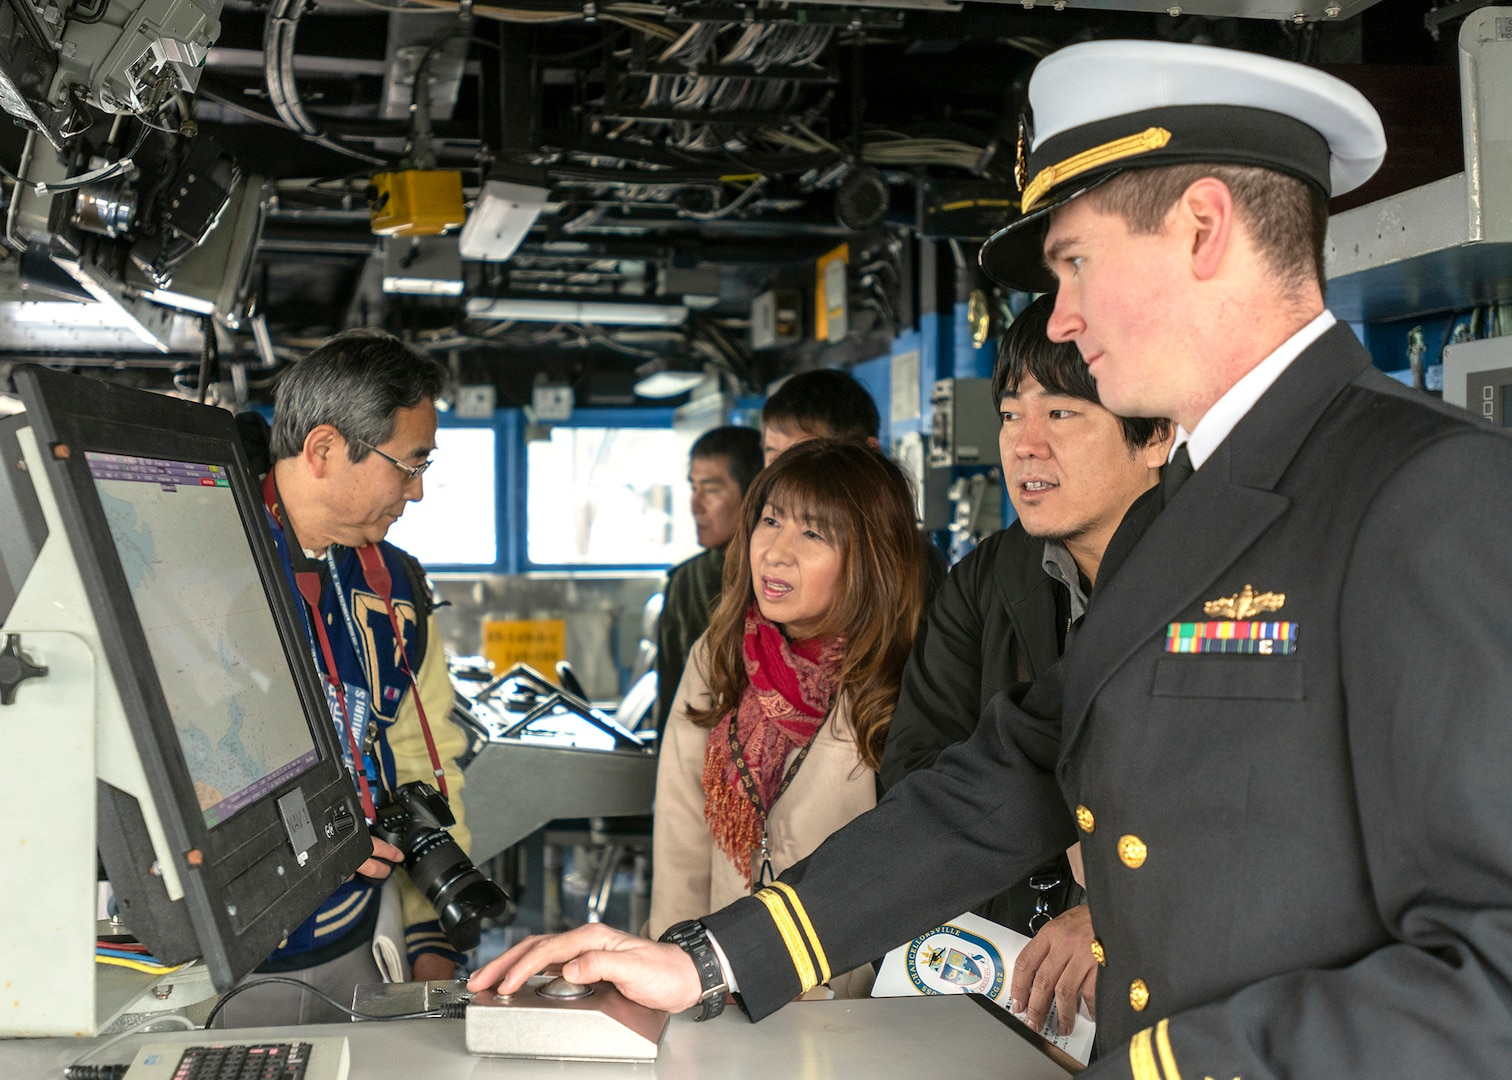 Fleet Activities Yokosuka's 26th Annual Spring Festival Attracts 37,000 Visitors